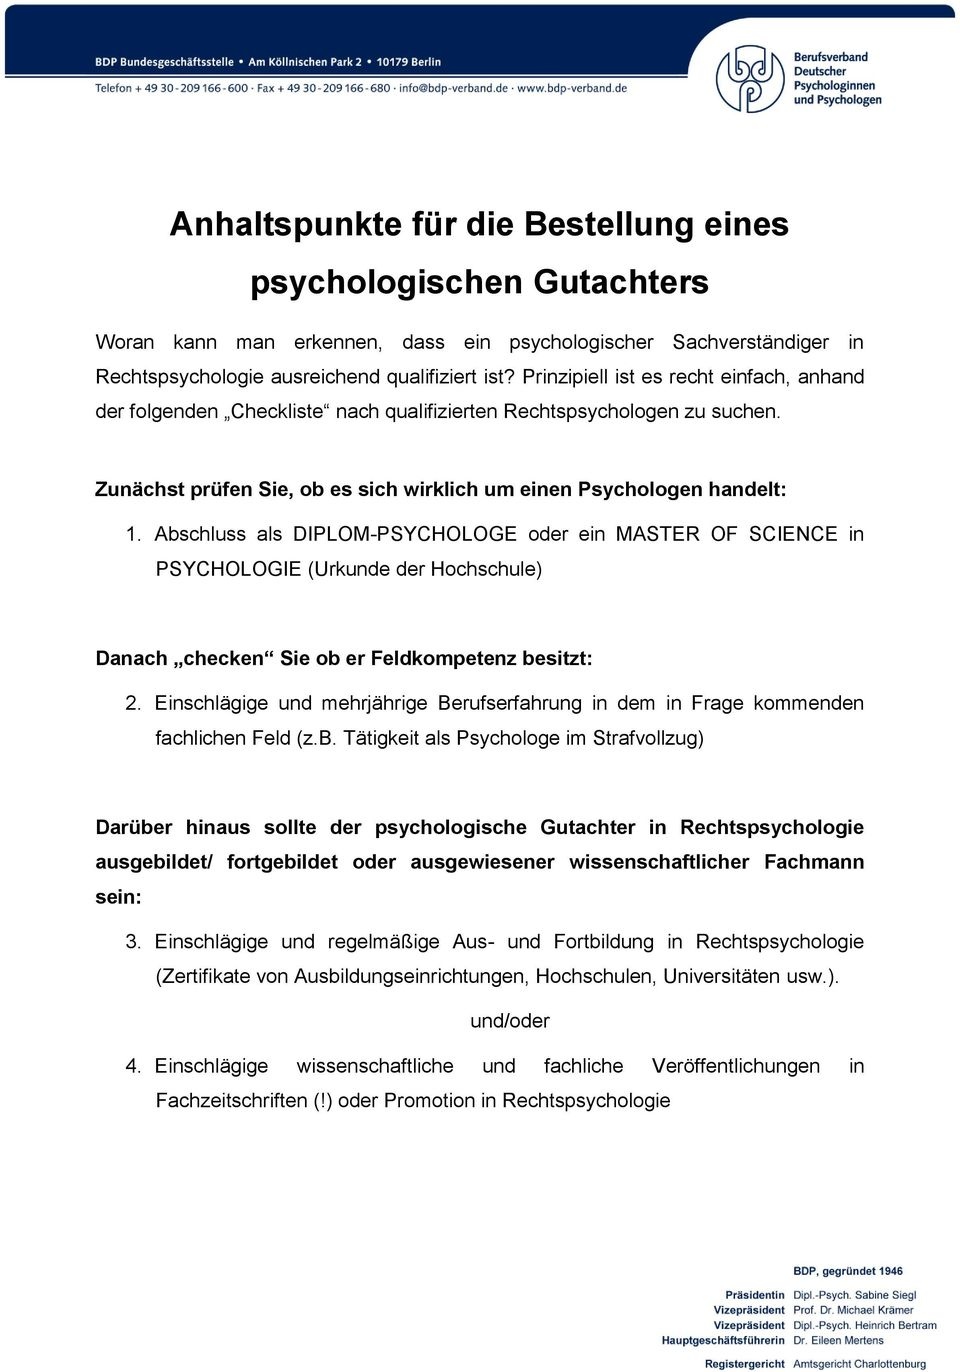 Abschluss als DIPLOM-PSYCHOLOGE oder ein MASTER OF SCIENCE in PSYCHOLOGIE (Urkunde der Hochschule) Danach checken Sie ob er Feldkompetenz besitzt: 2.